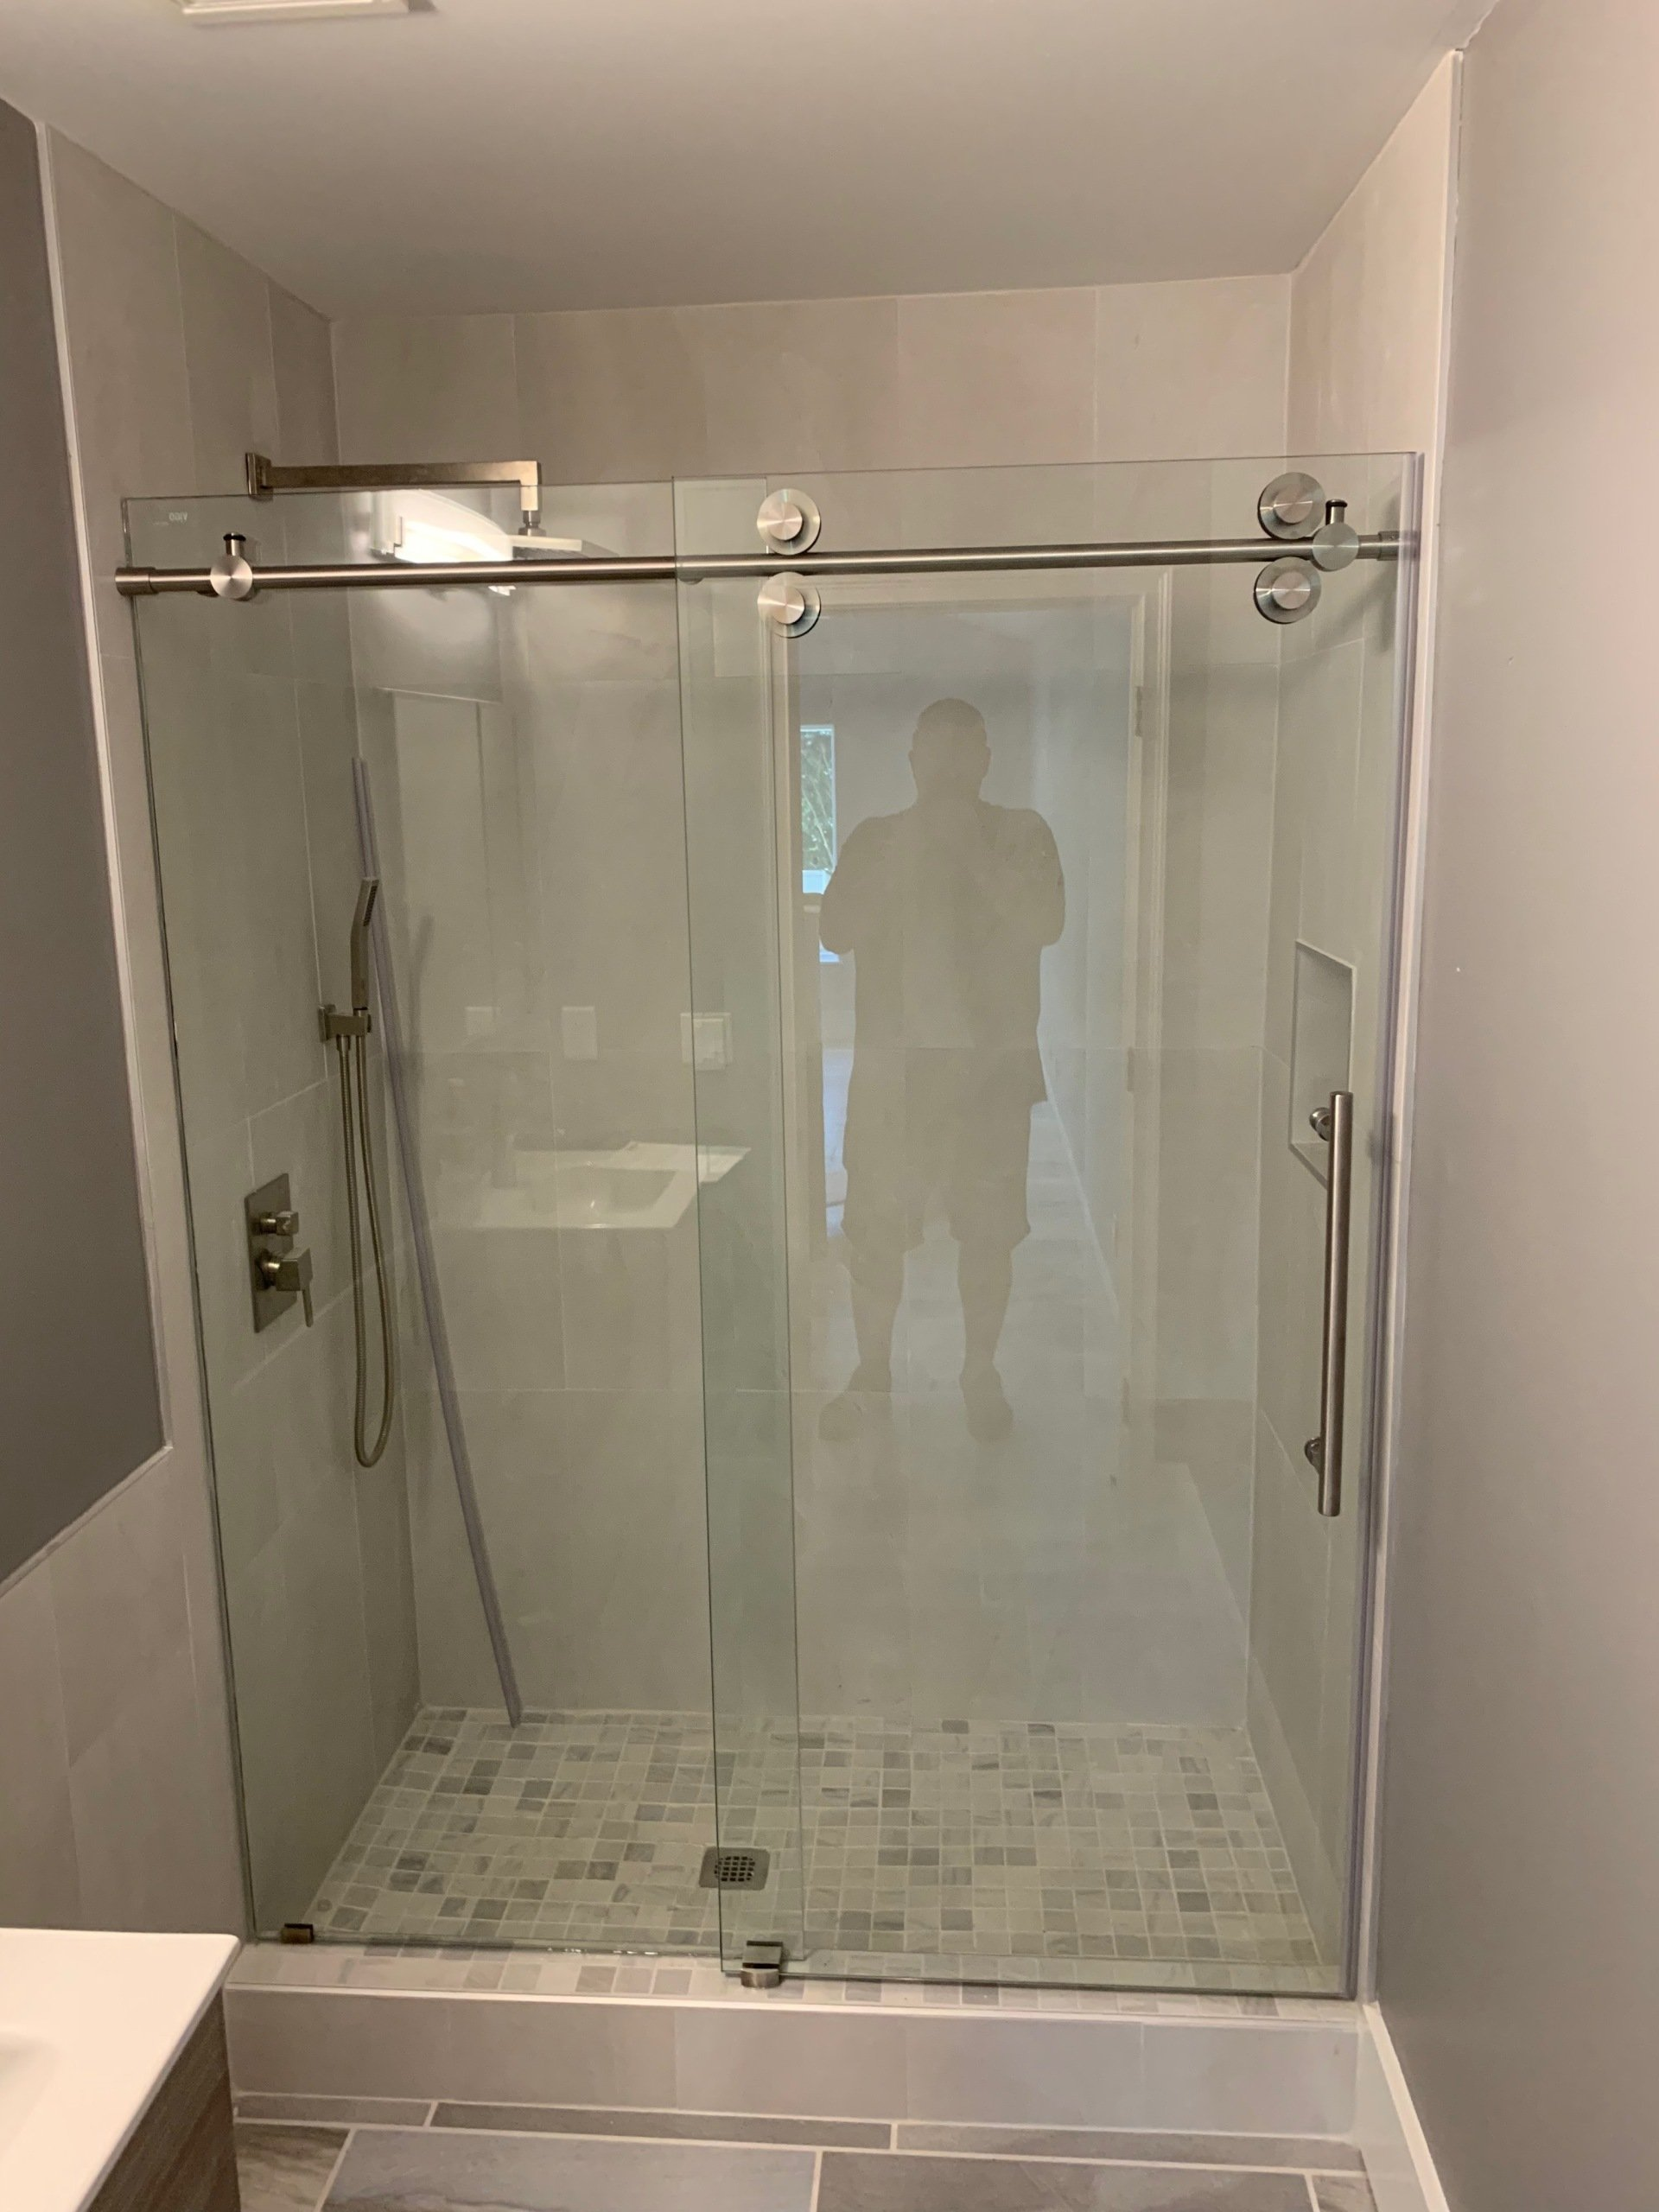 Shower Enclosures Jacksonville Baker Glass Inc 904 388